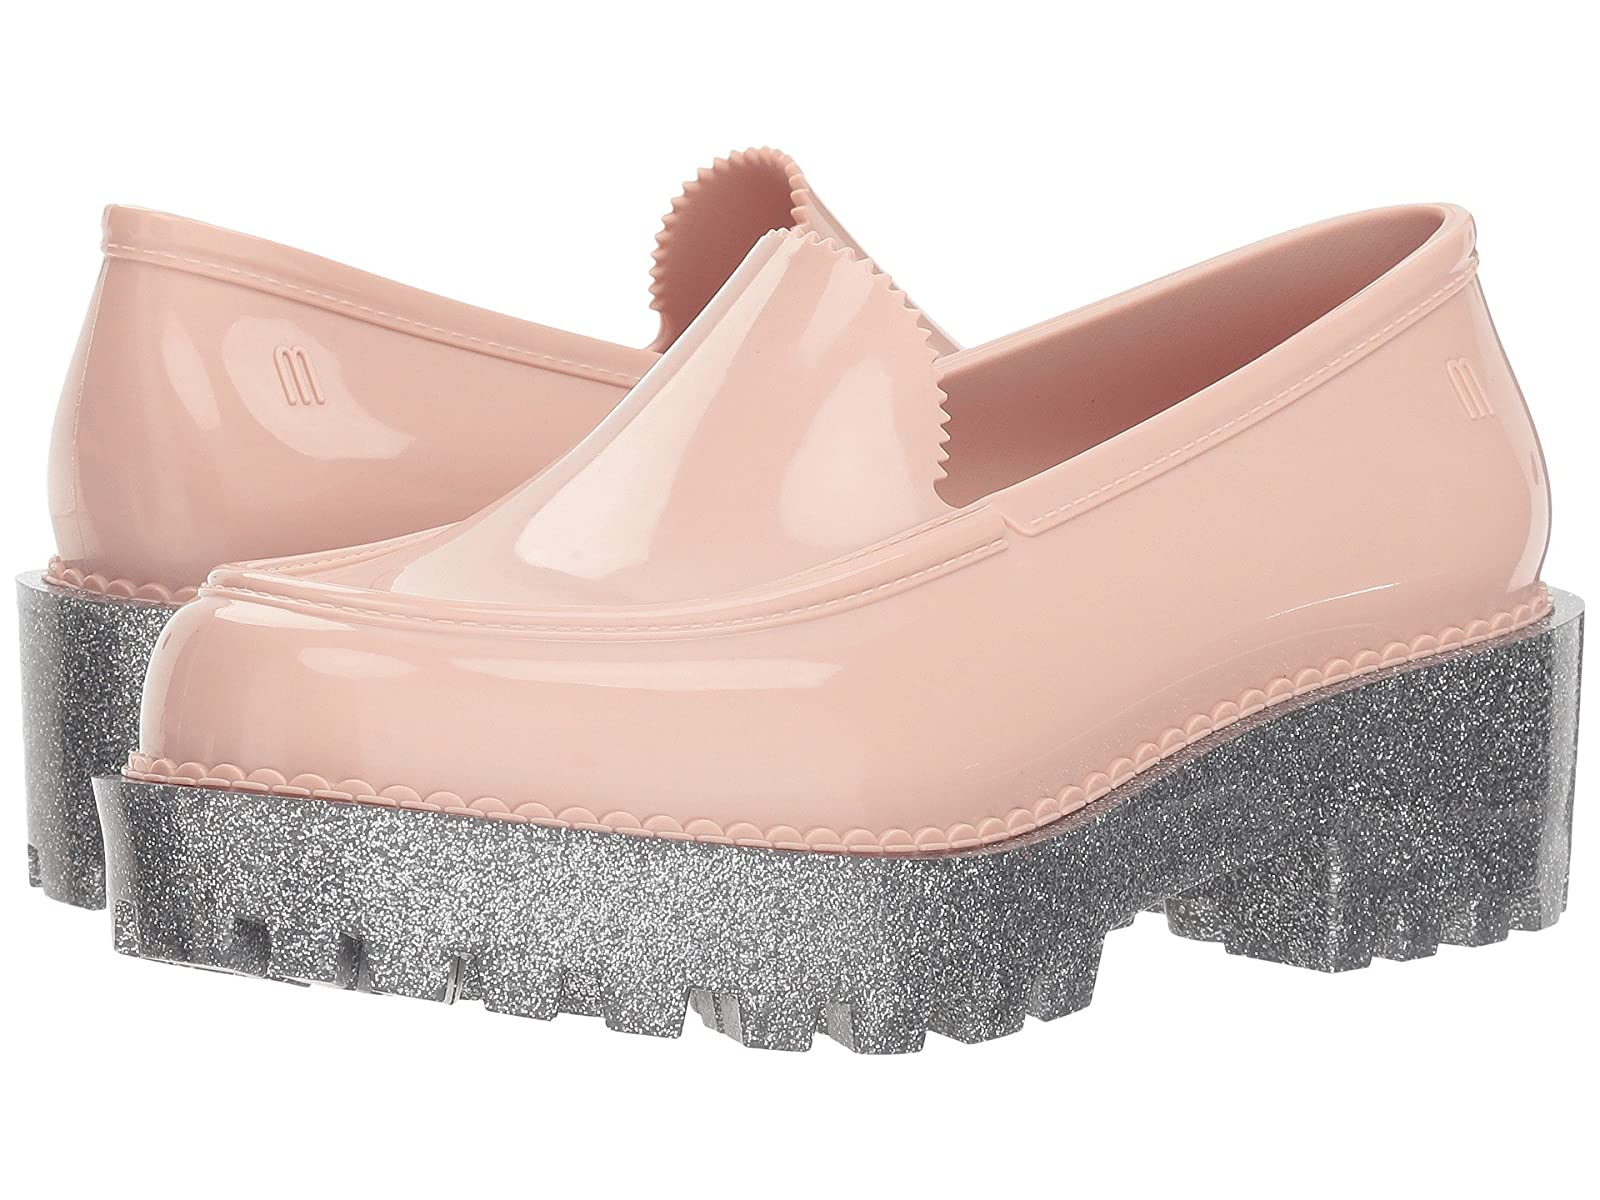 Melissa Shoes PanapanaCheap and distinctive eye-catching shoes